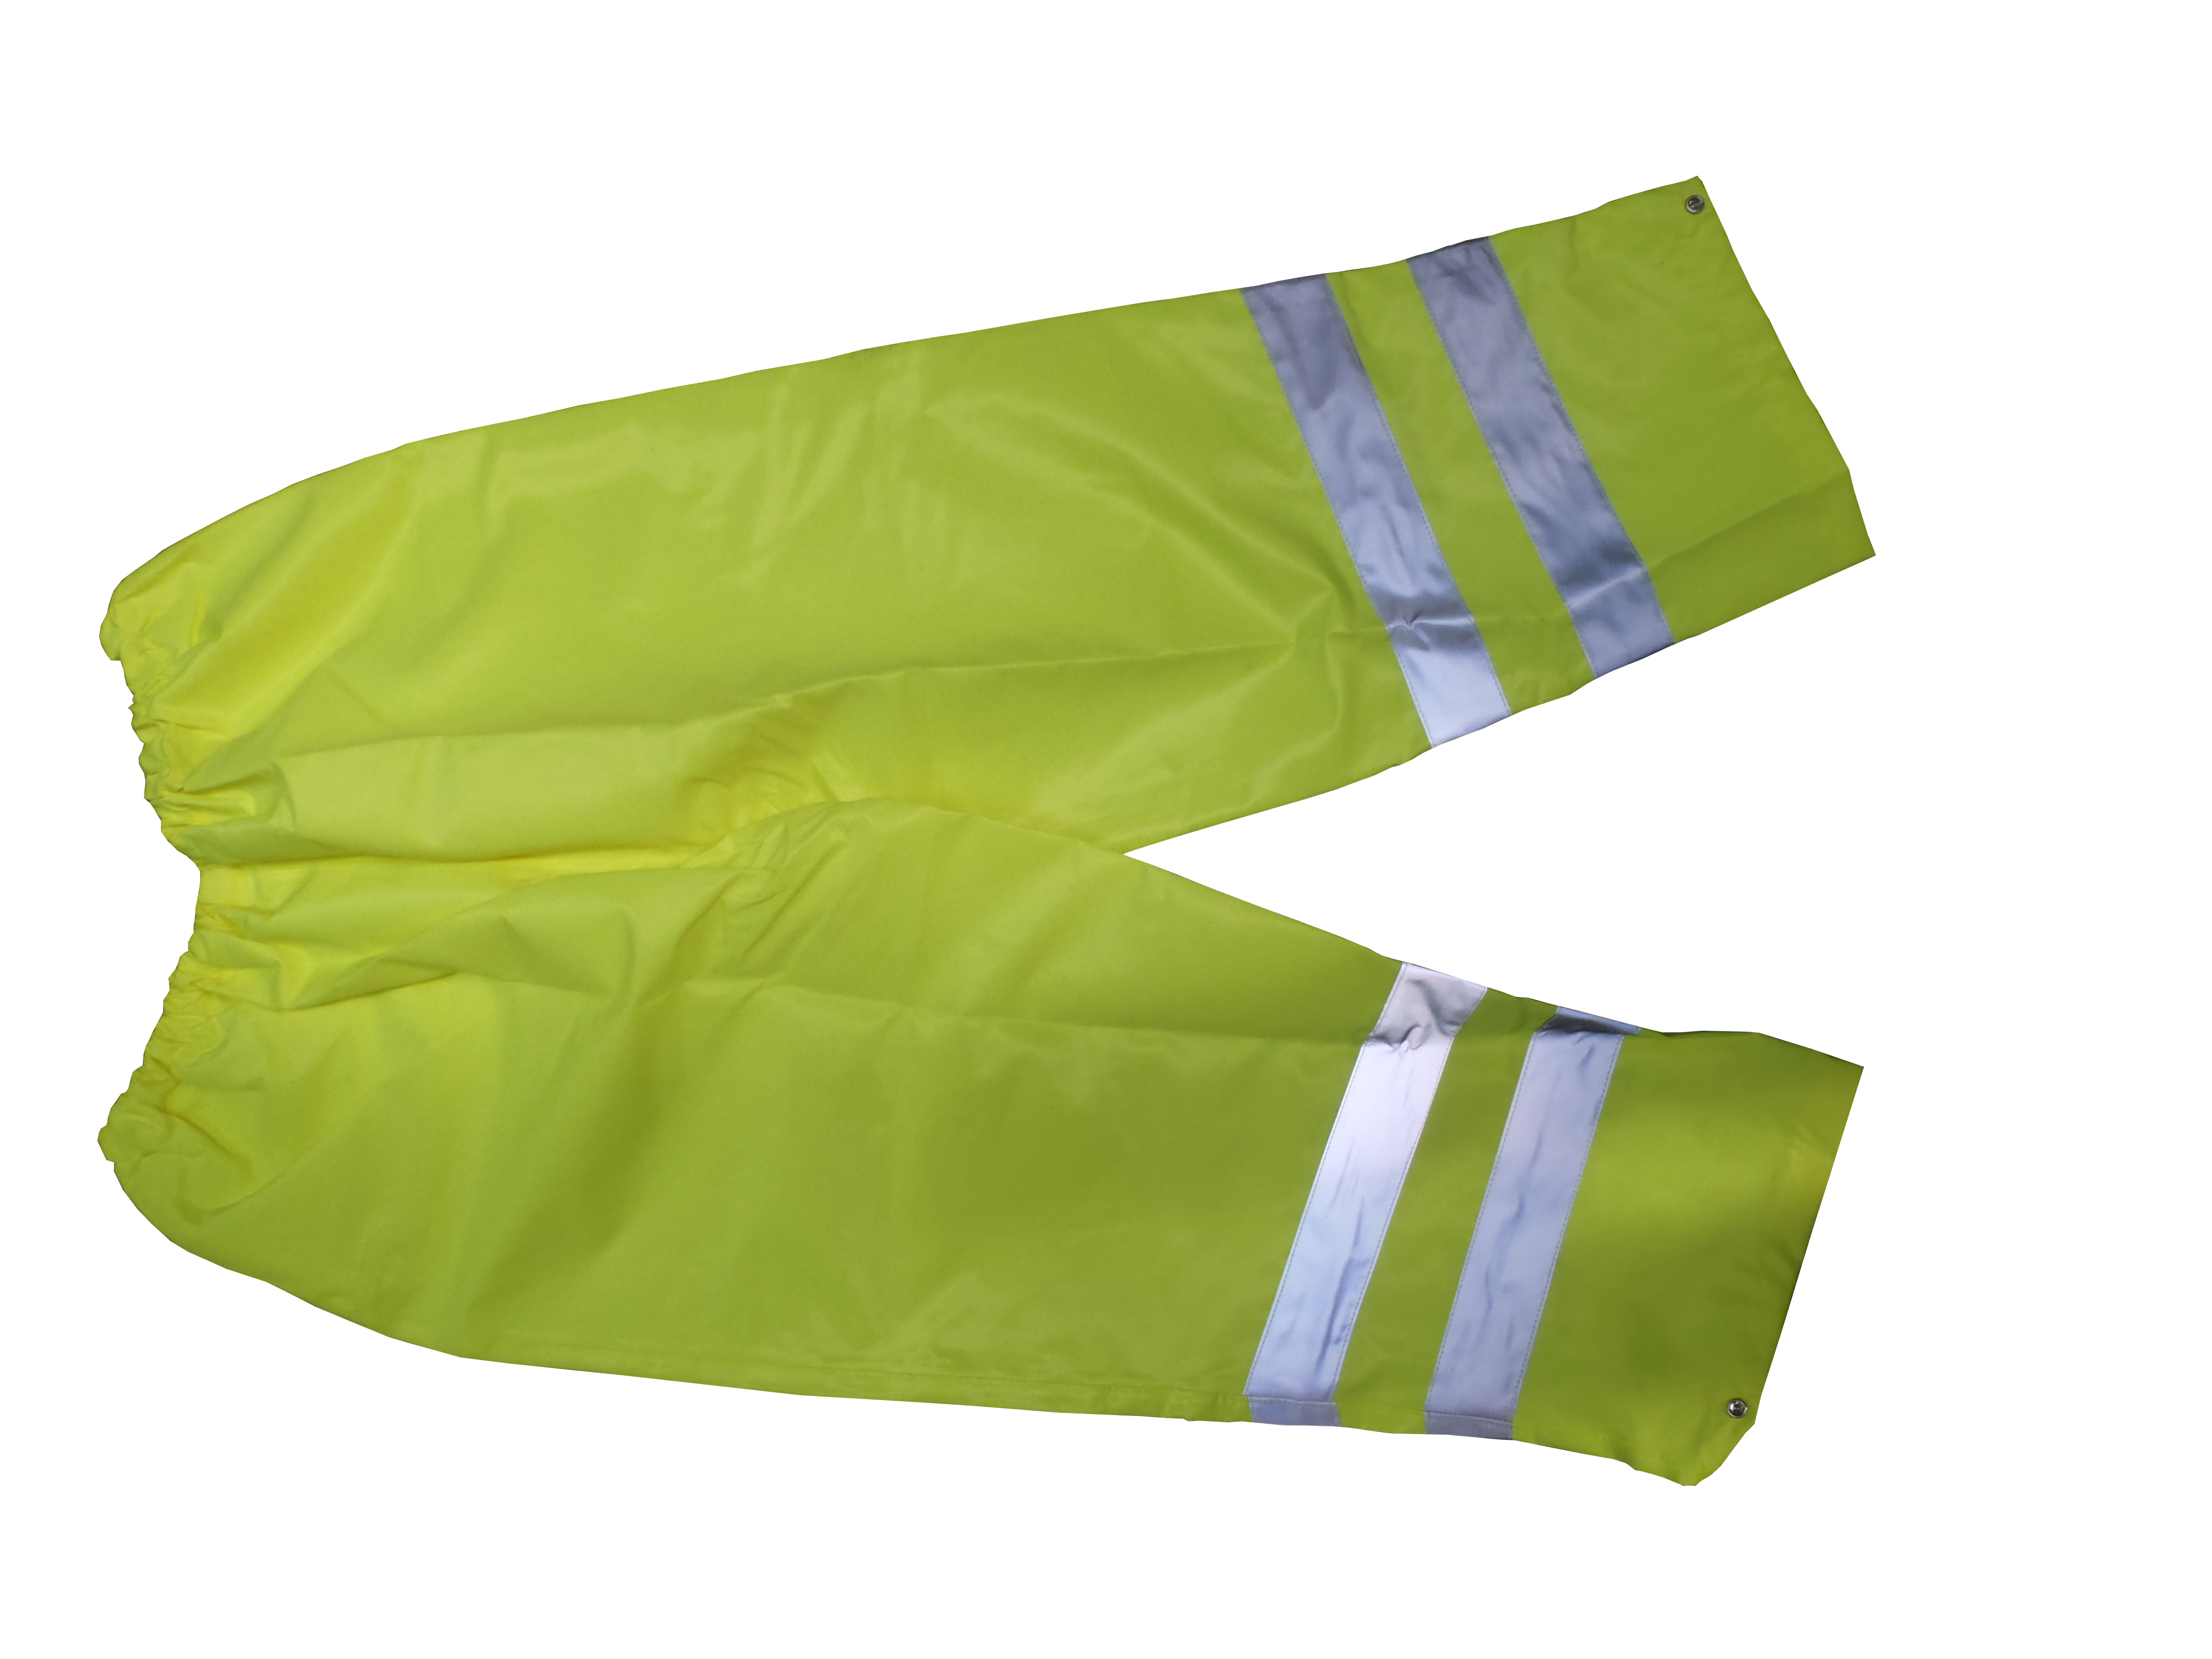 Lot 52 - PACK OF 5 - HI-VIS OVER TROUSERS - NEW